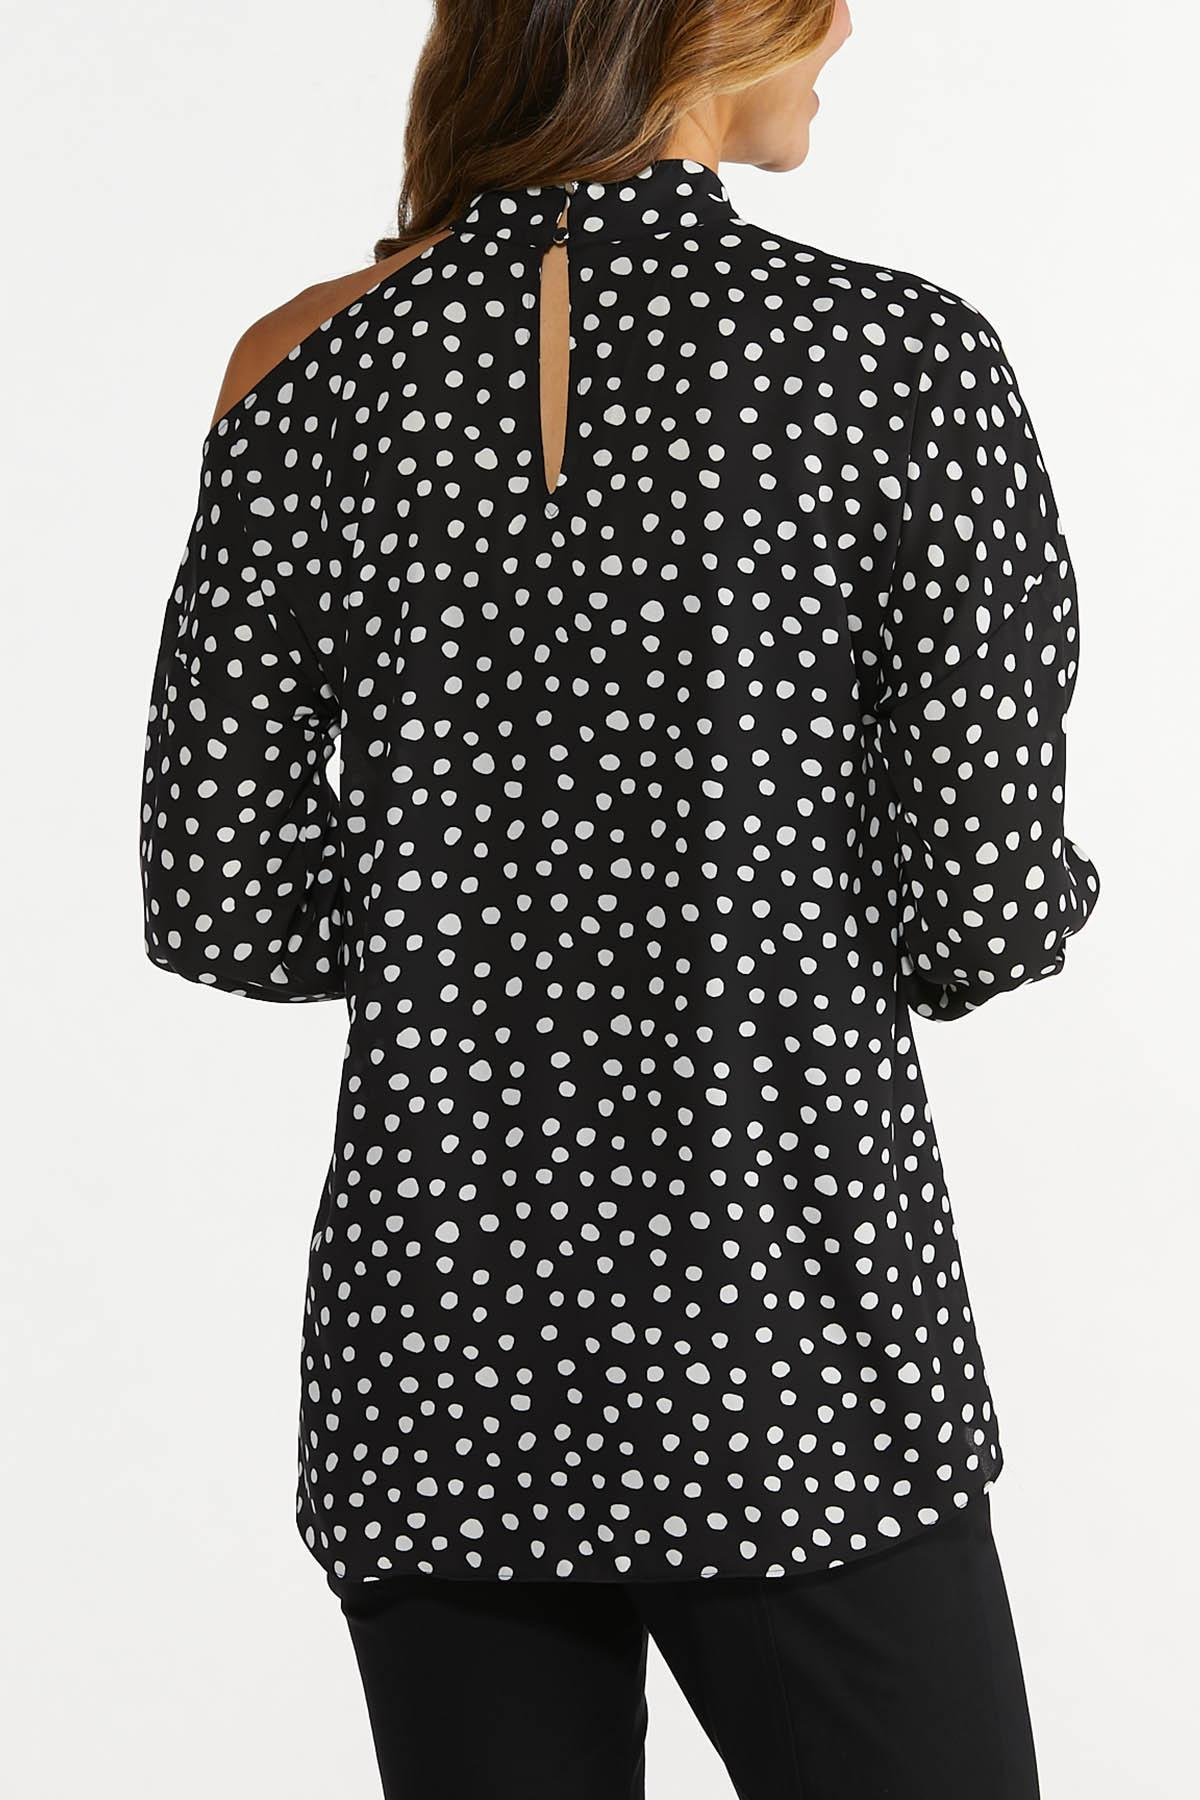 Dotted Cutout Top (Item #44674593)